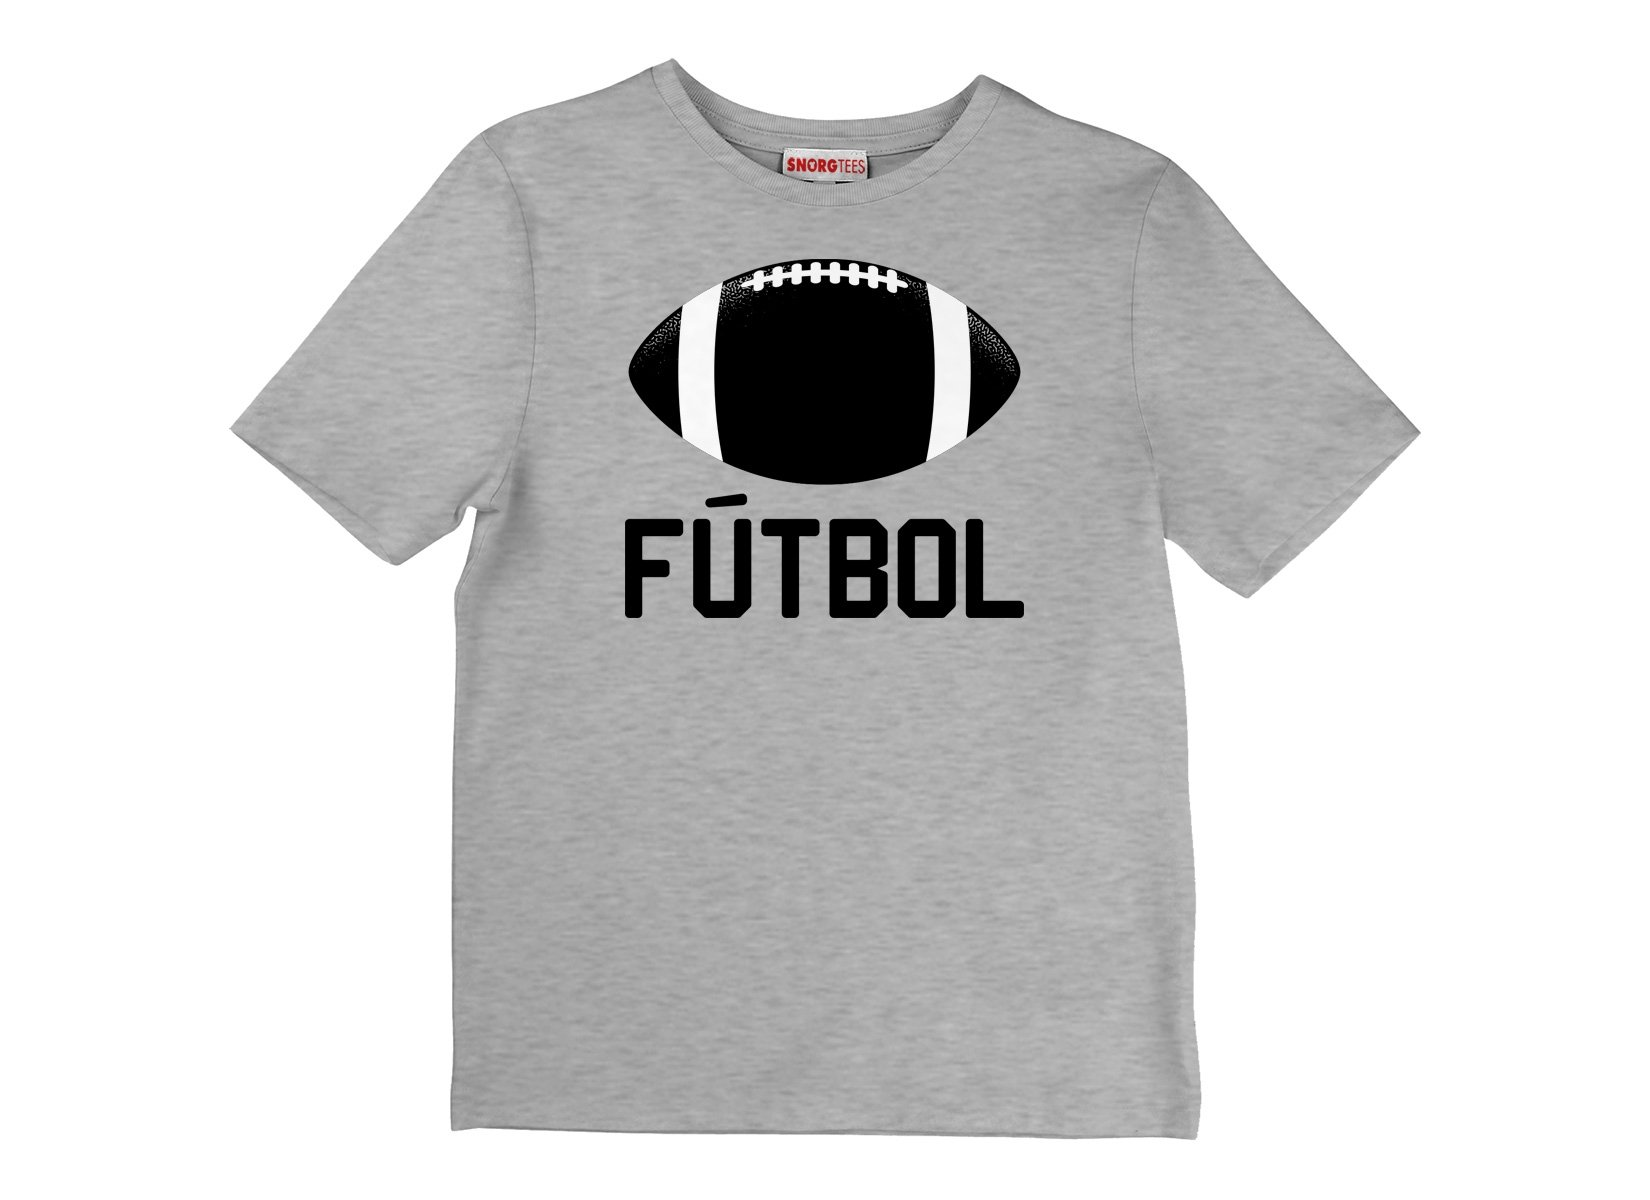 Futbol on Kids T-Shirt